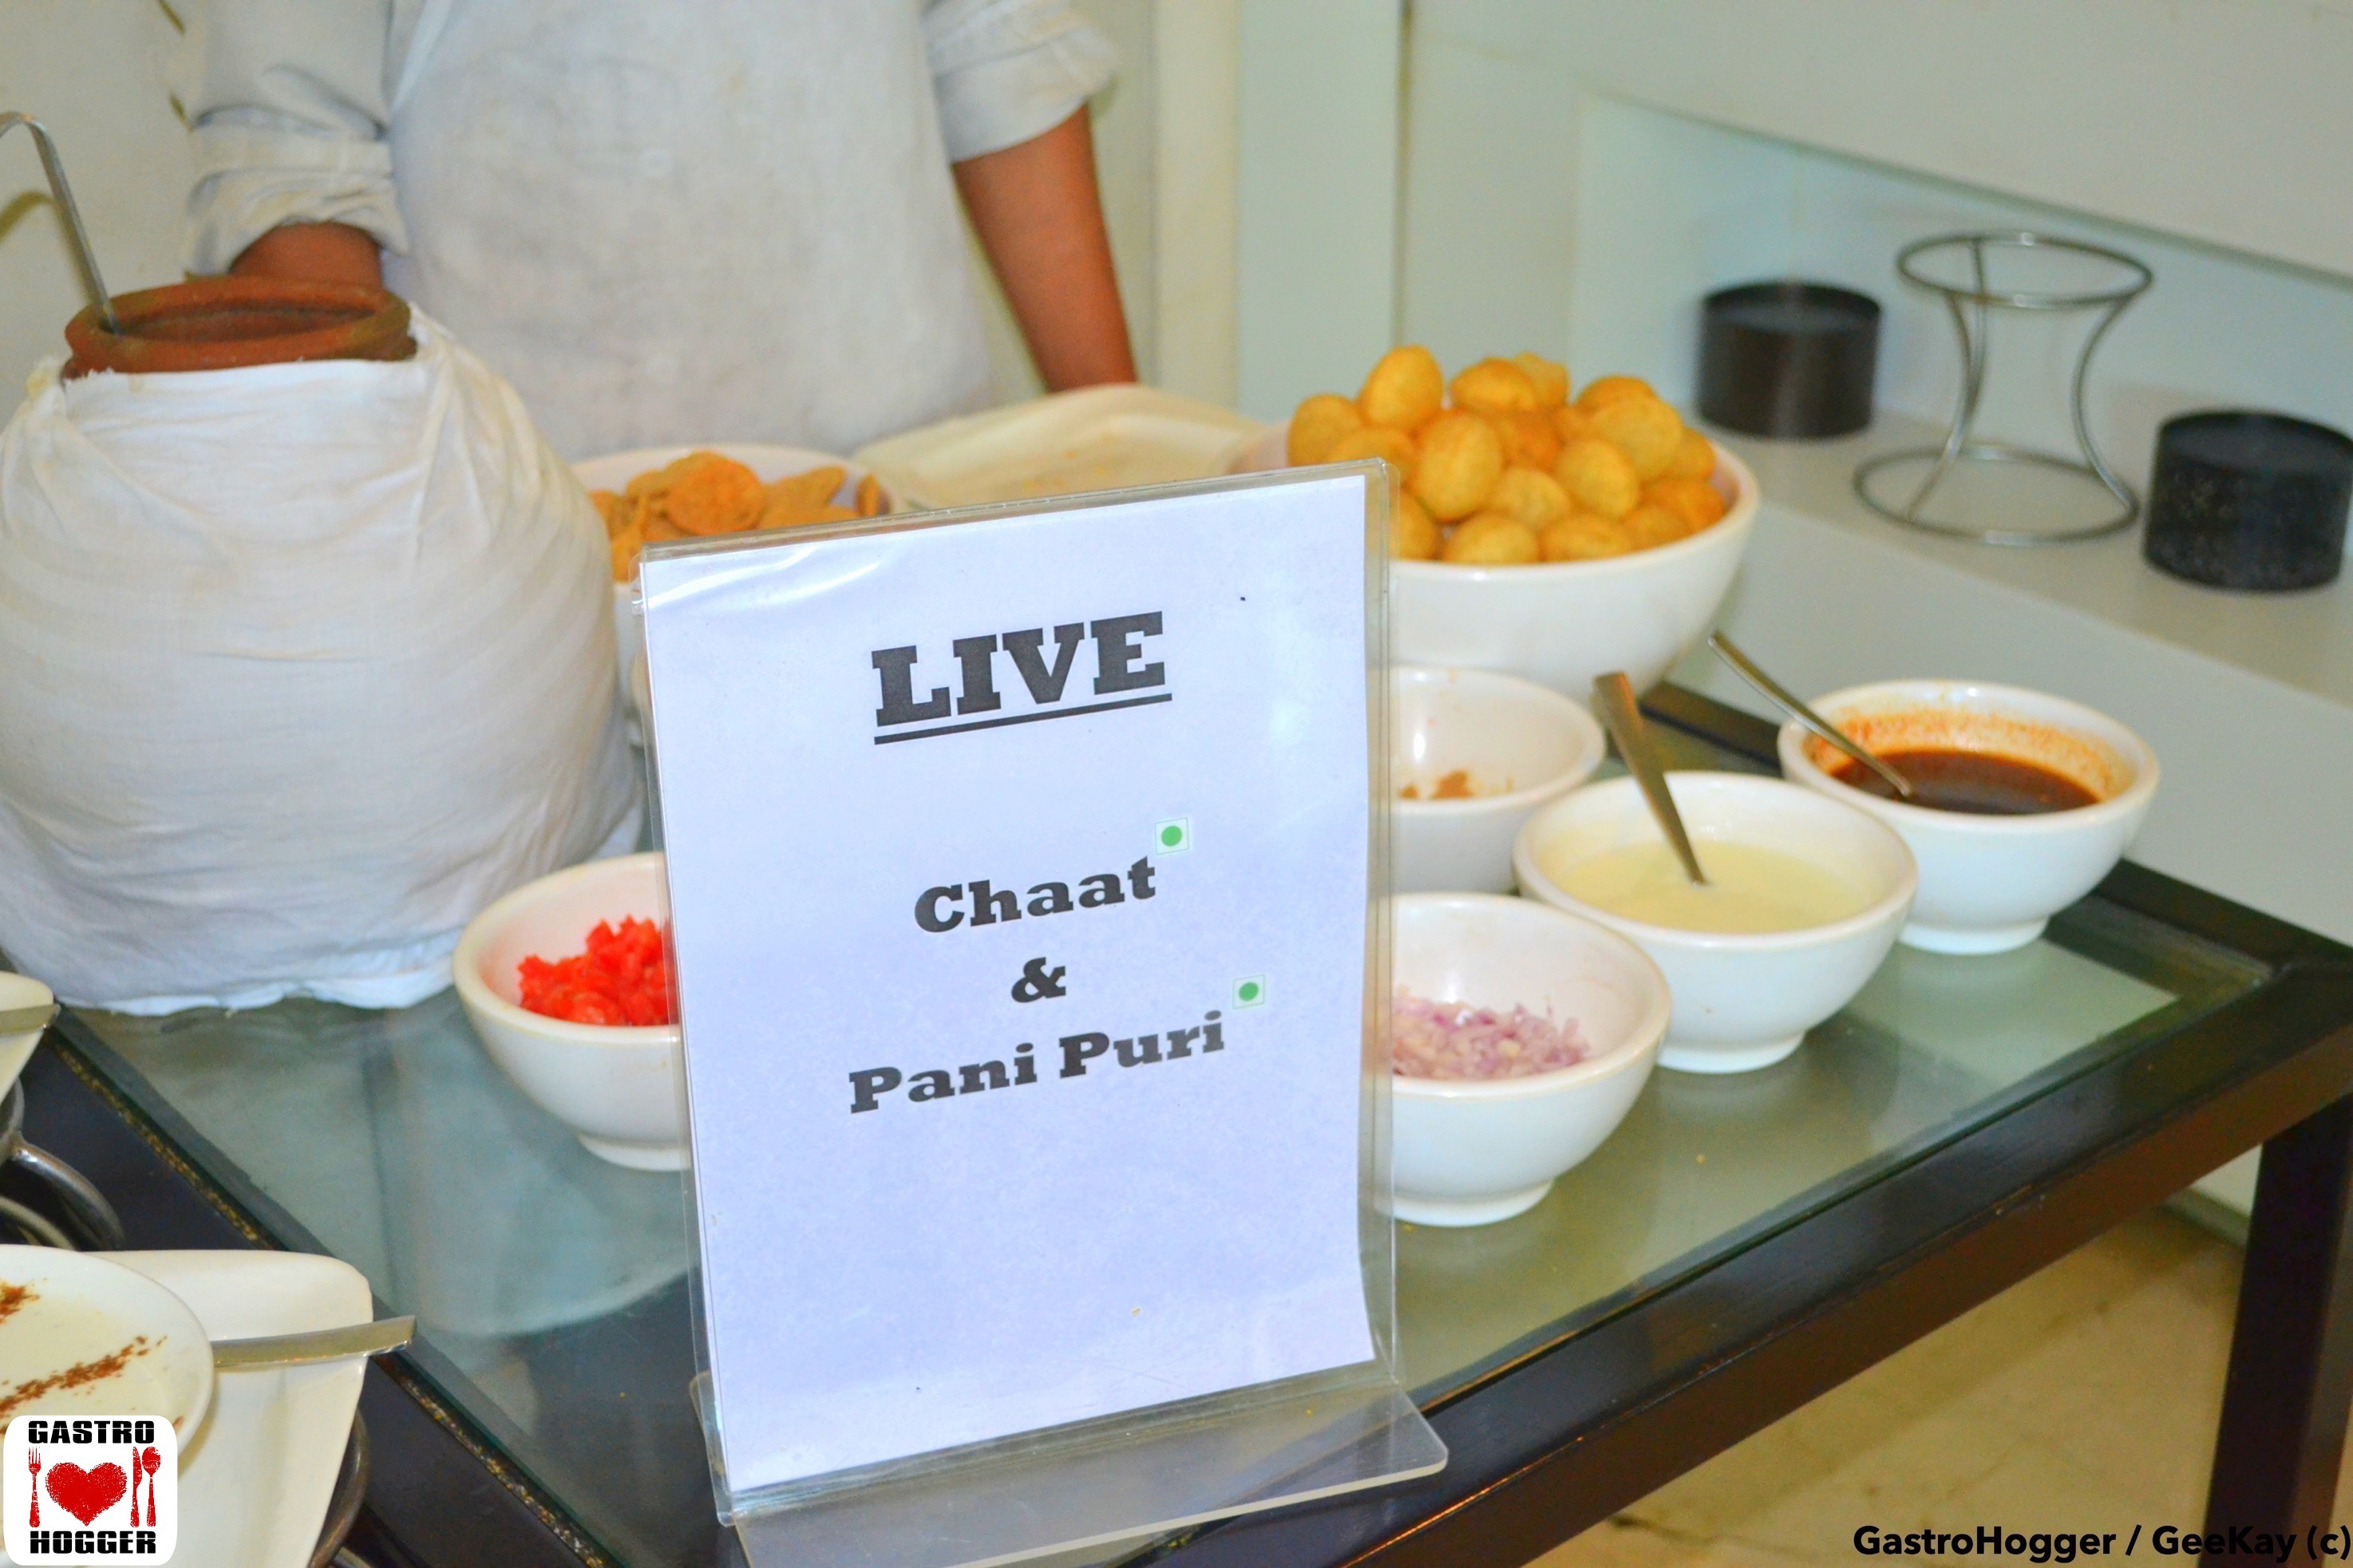 Live Chaat Section